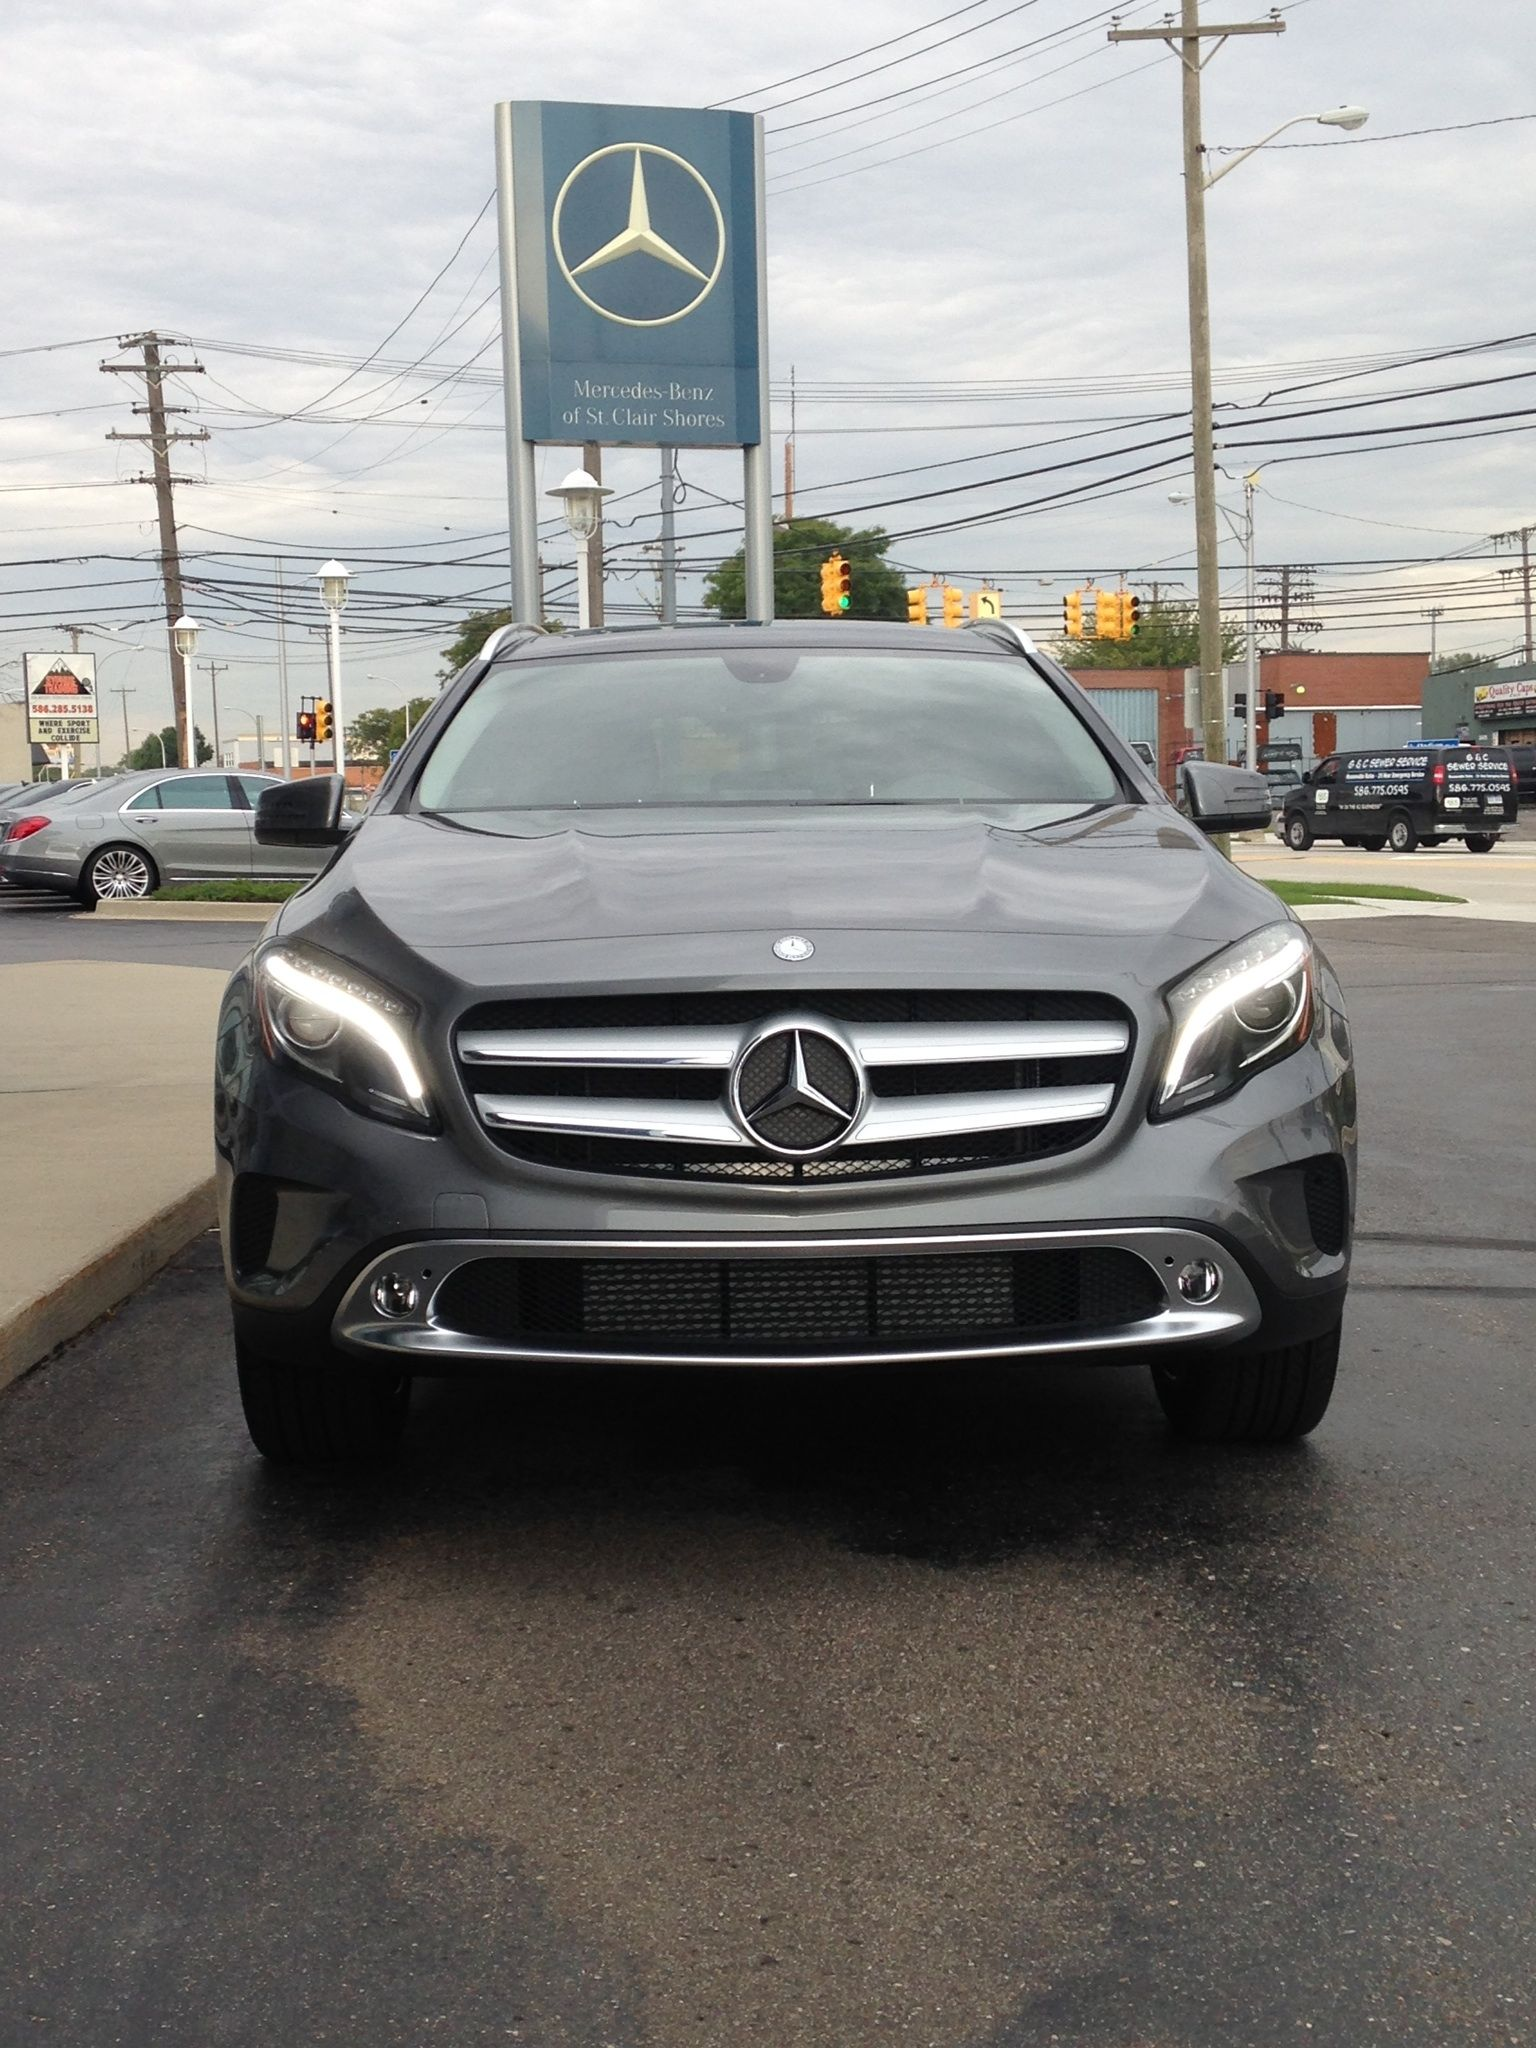 Pin On Mercedes Benz Of St Clair Shores